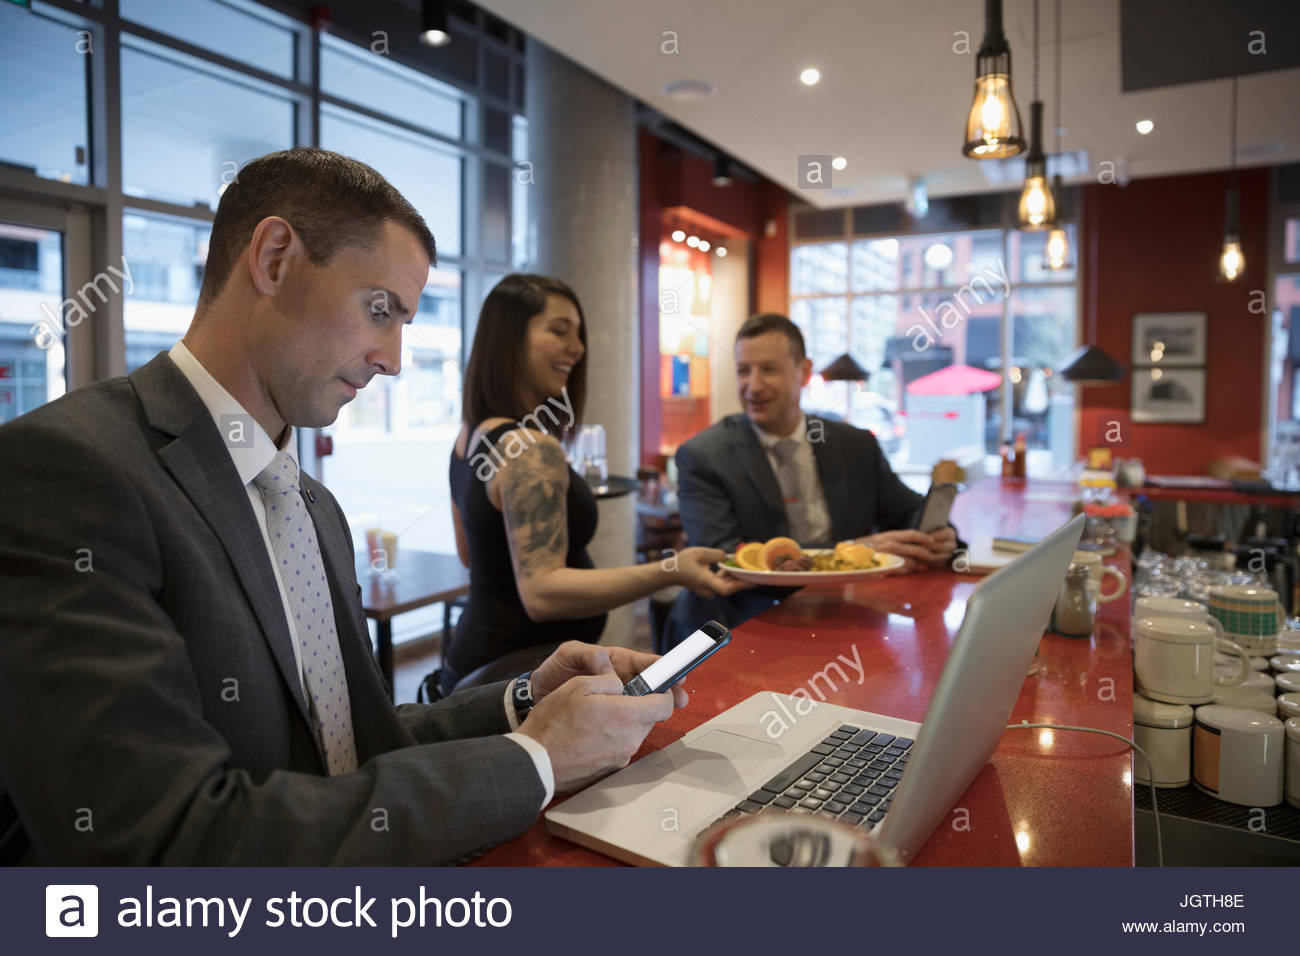 Waitress serving food to businessman working at diner counter - Stock Image